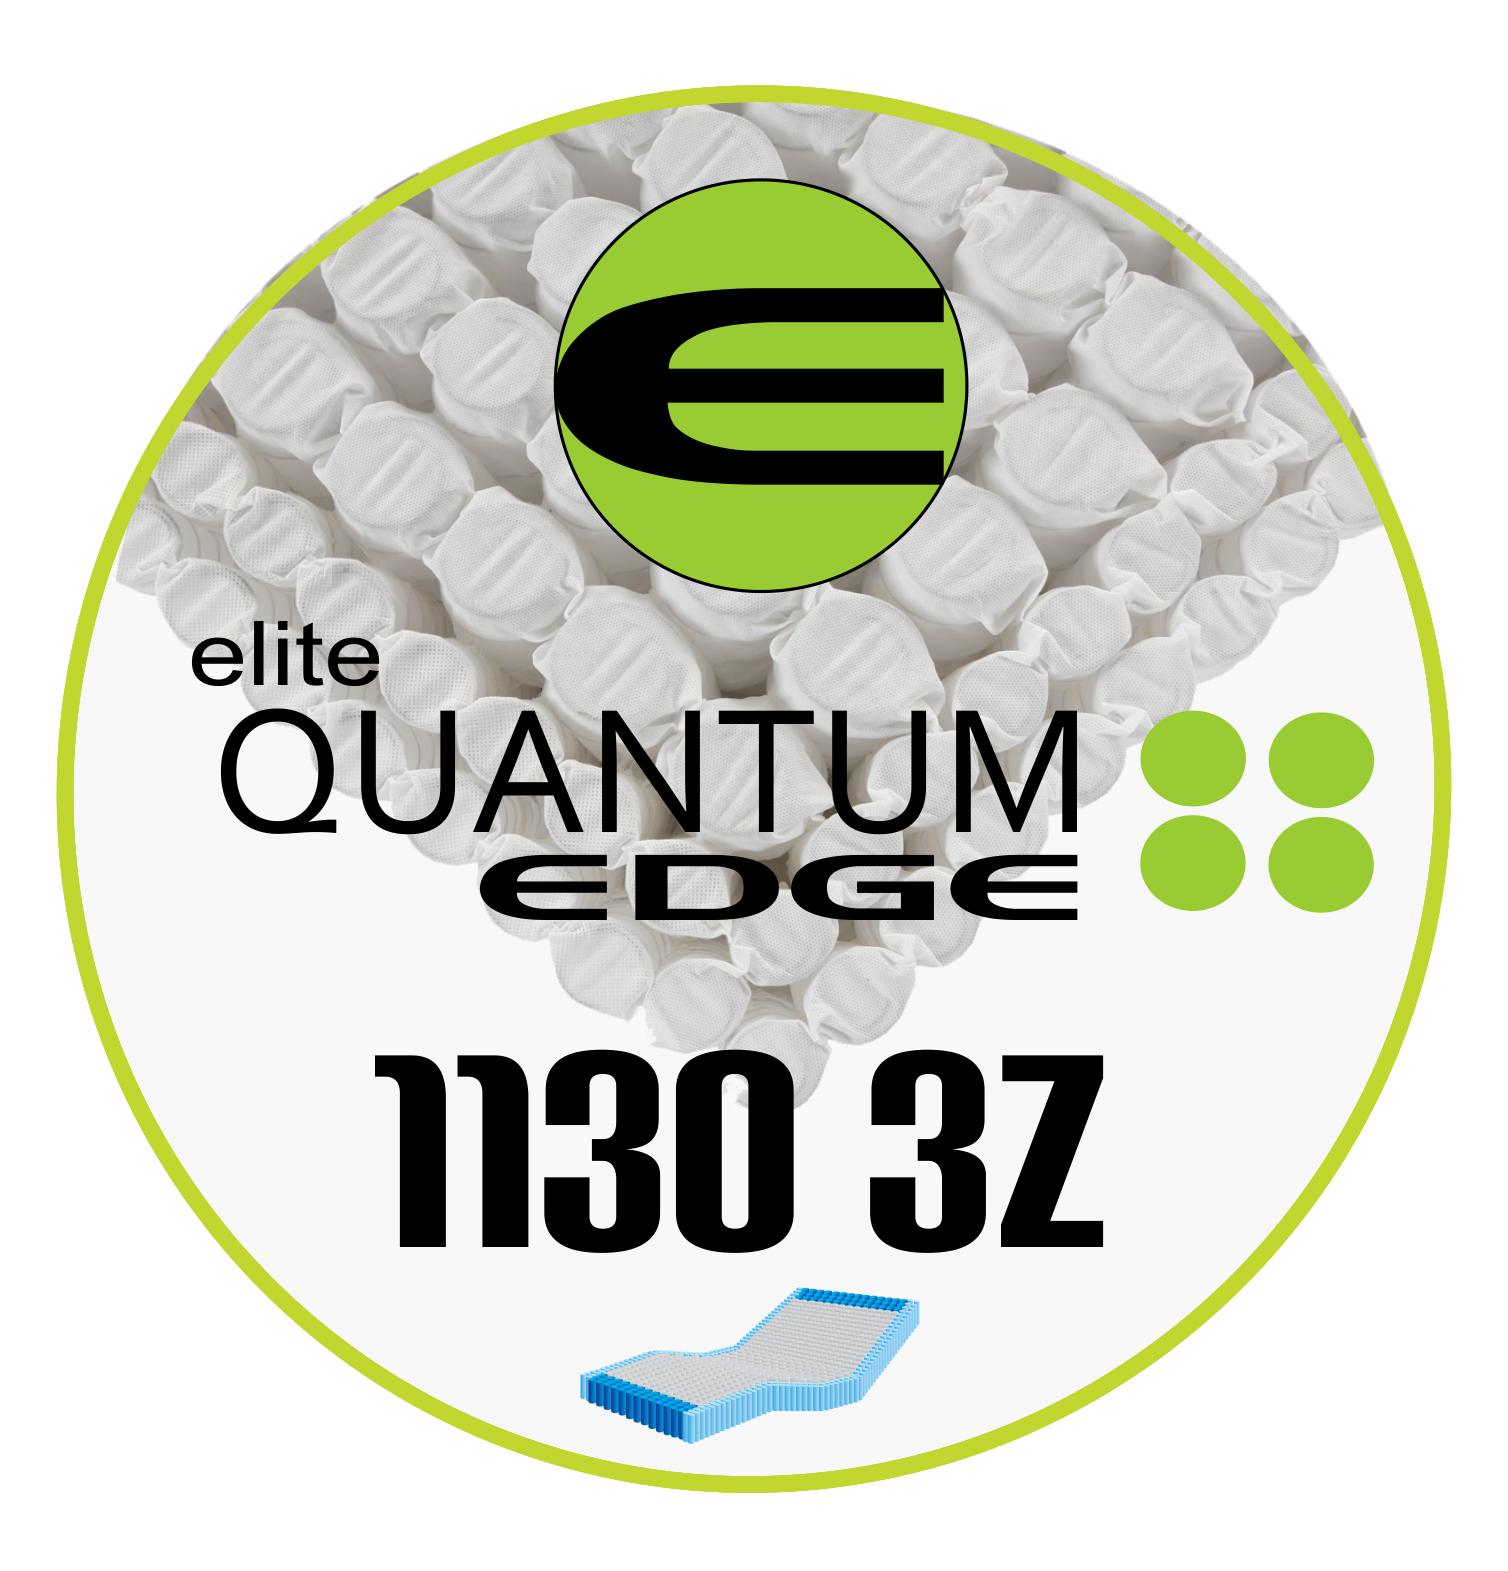 db9a7b5cd5a50 Quantum® Edge and Quantum® Elite - One of the most advanced spring systems  available in the US is the Quantum Coil from Leggett and Platt.